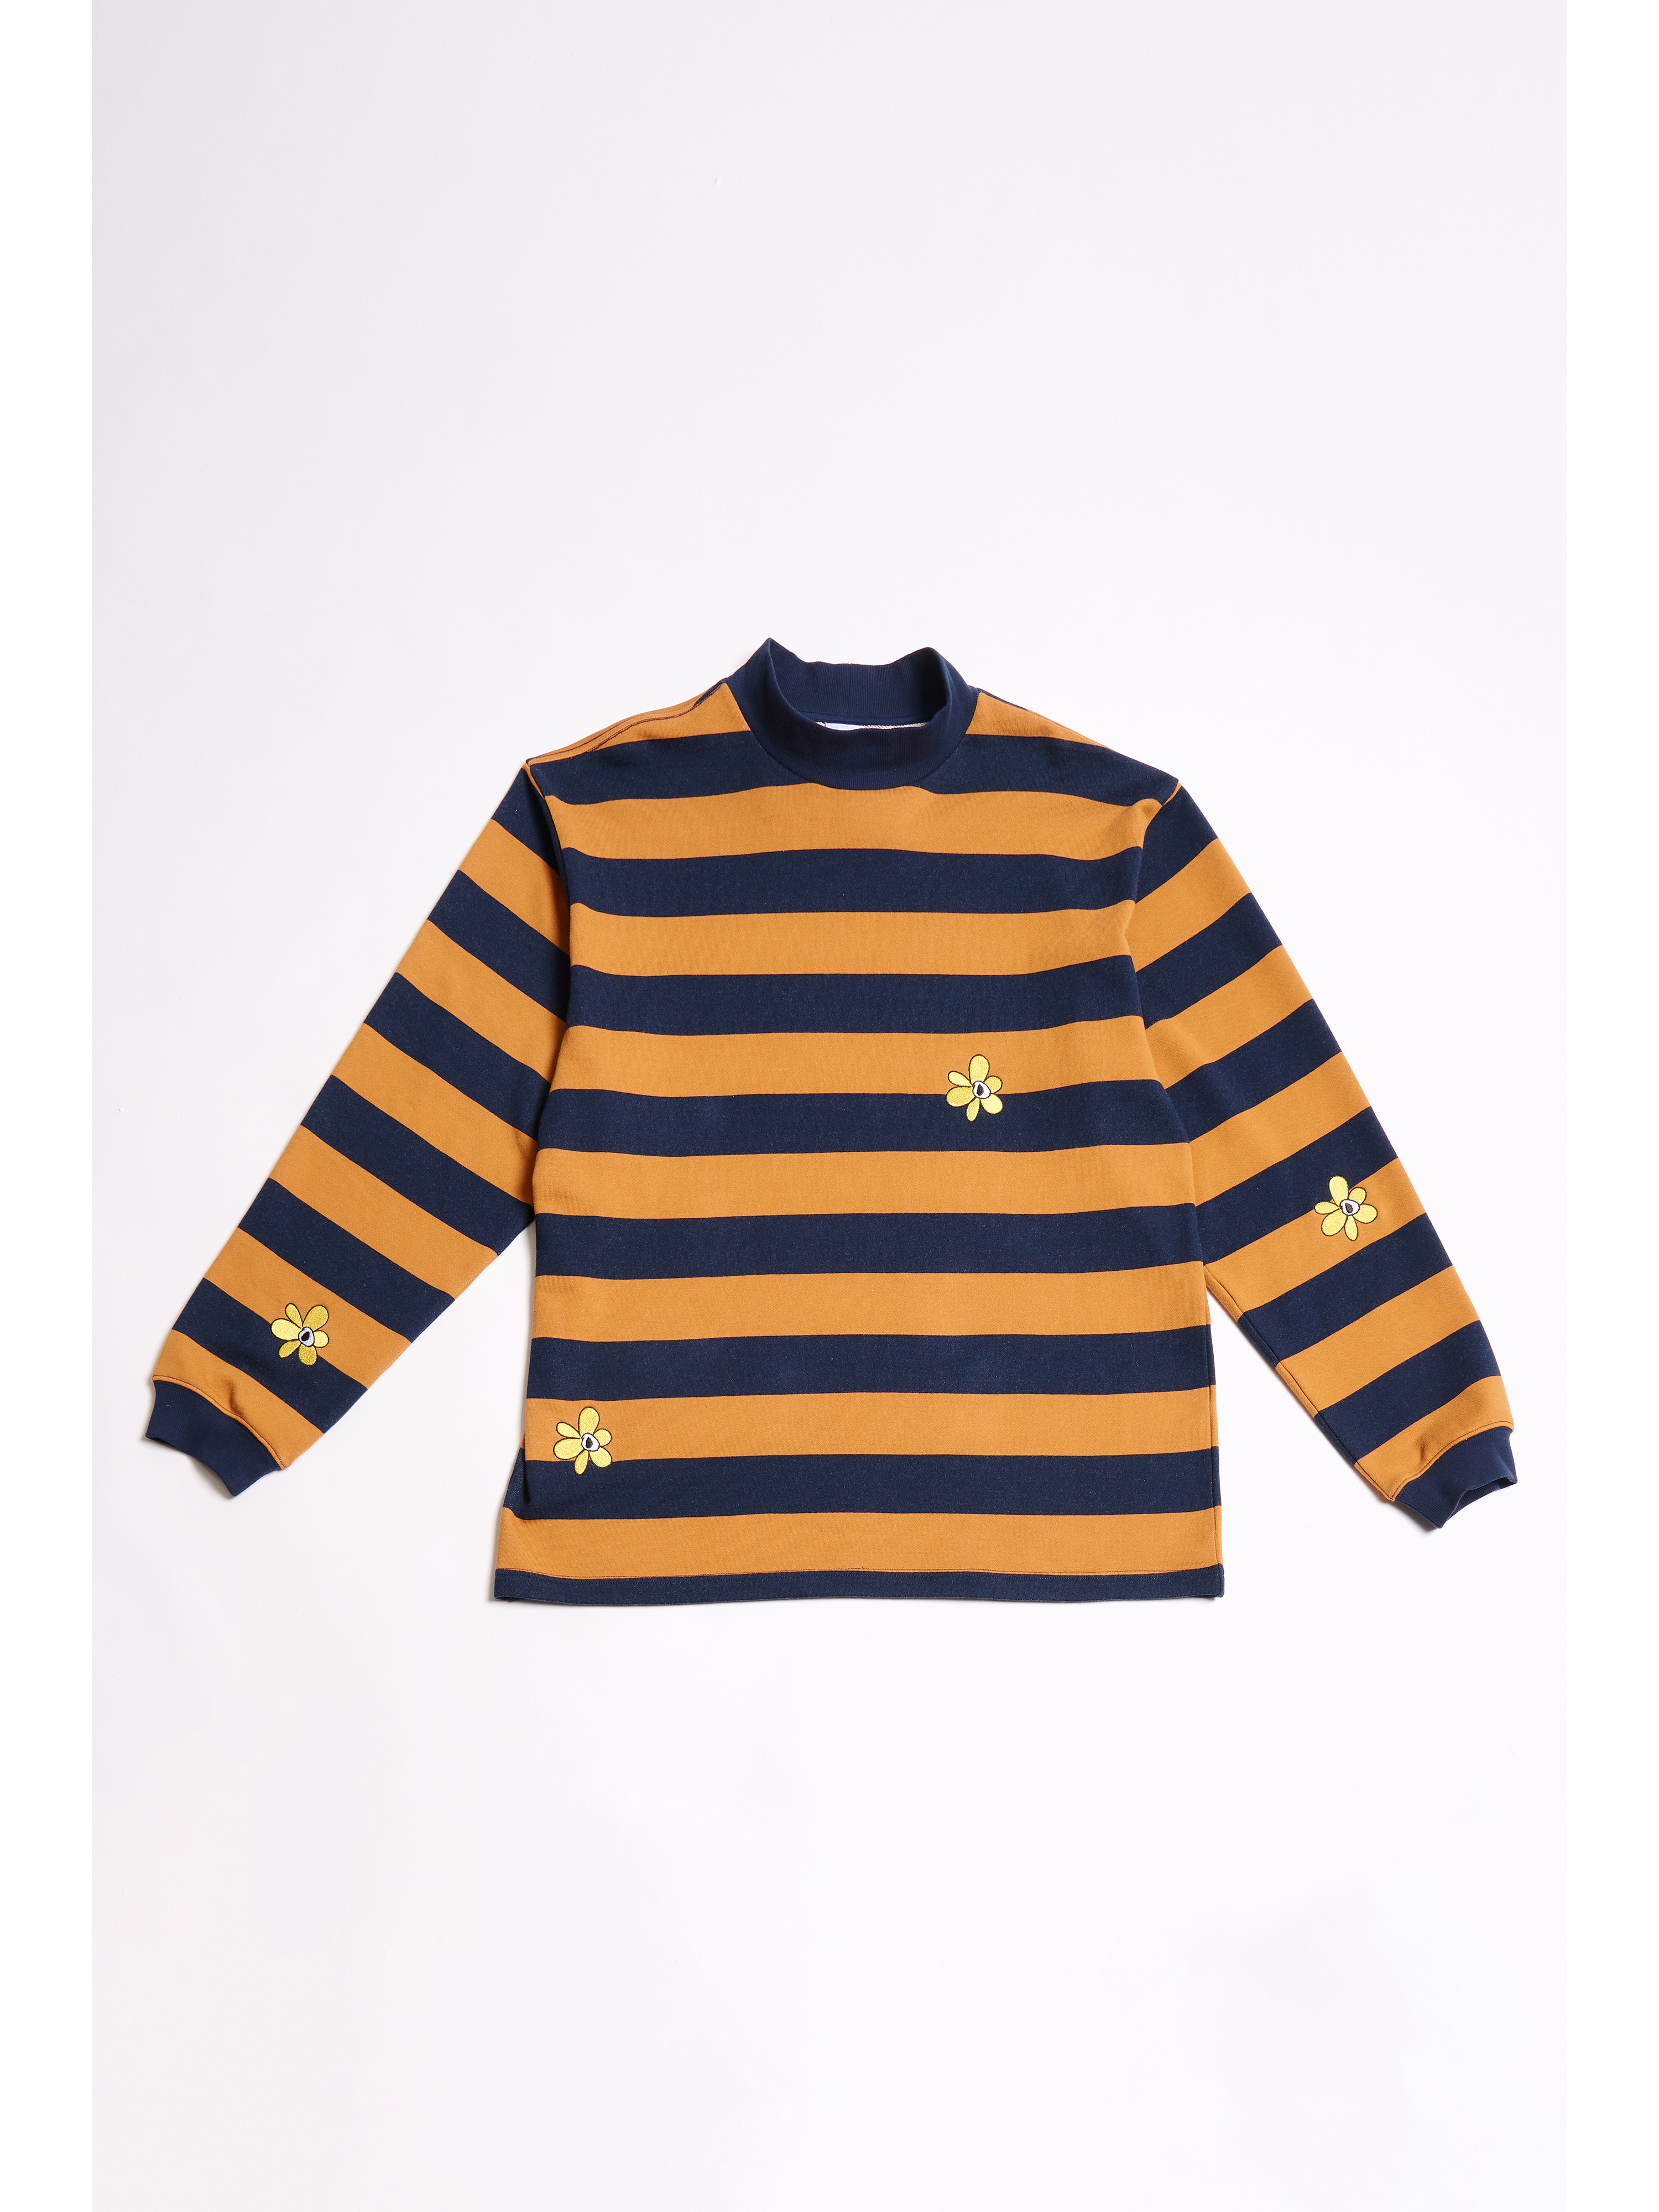 P.A.M. (Perks And Mini) / GROW WITH THE FLOW STRIPE MOCK NECK LS TOP